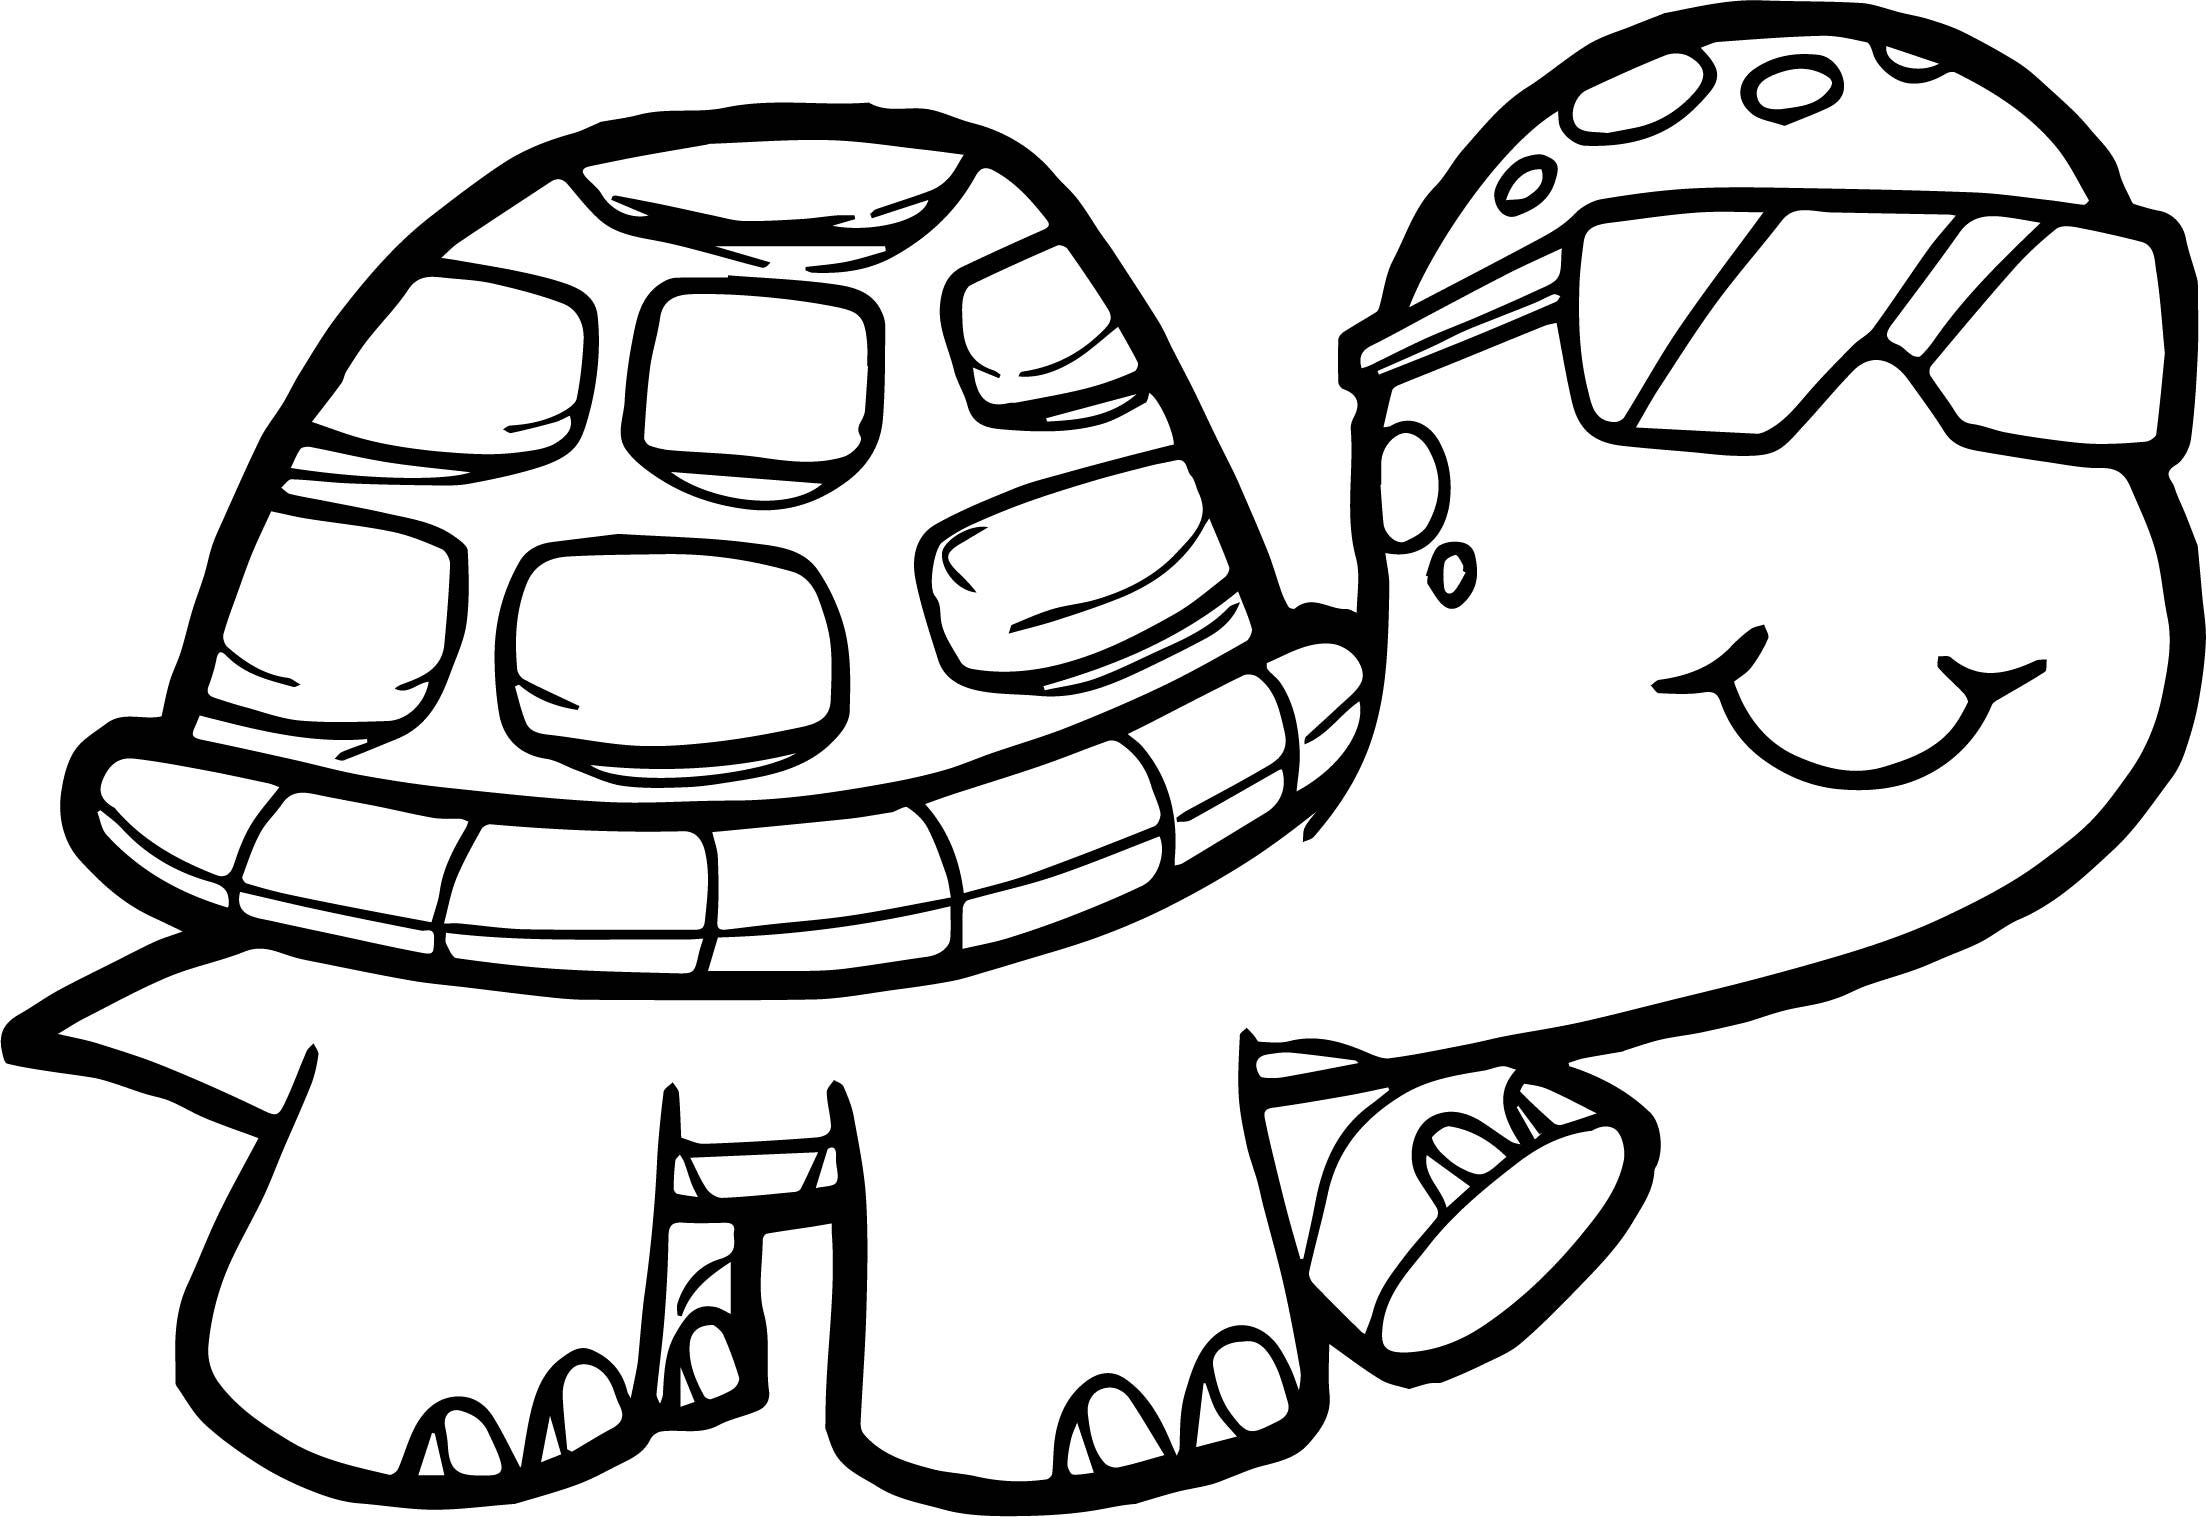 Detailed Turtle Coloring Pages At Getcolorings